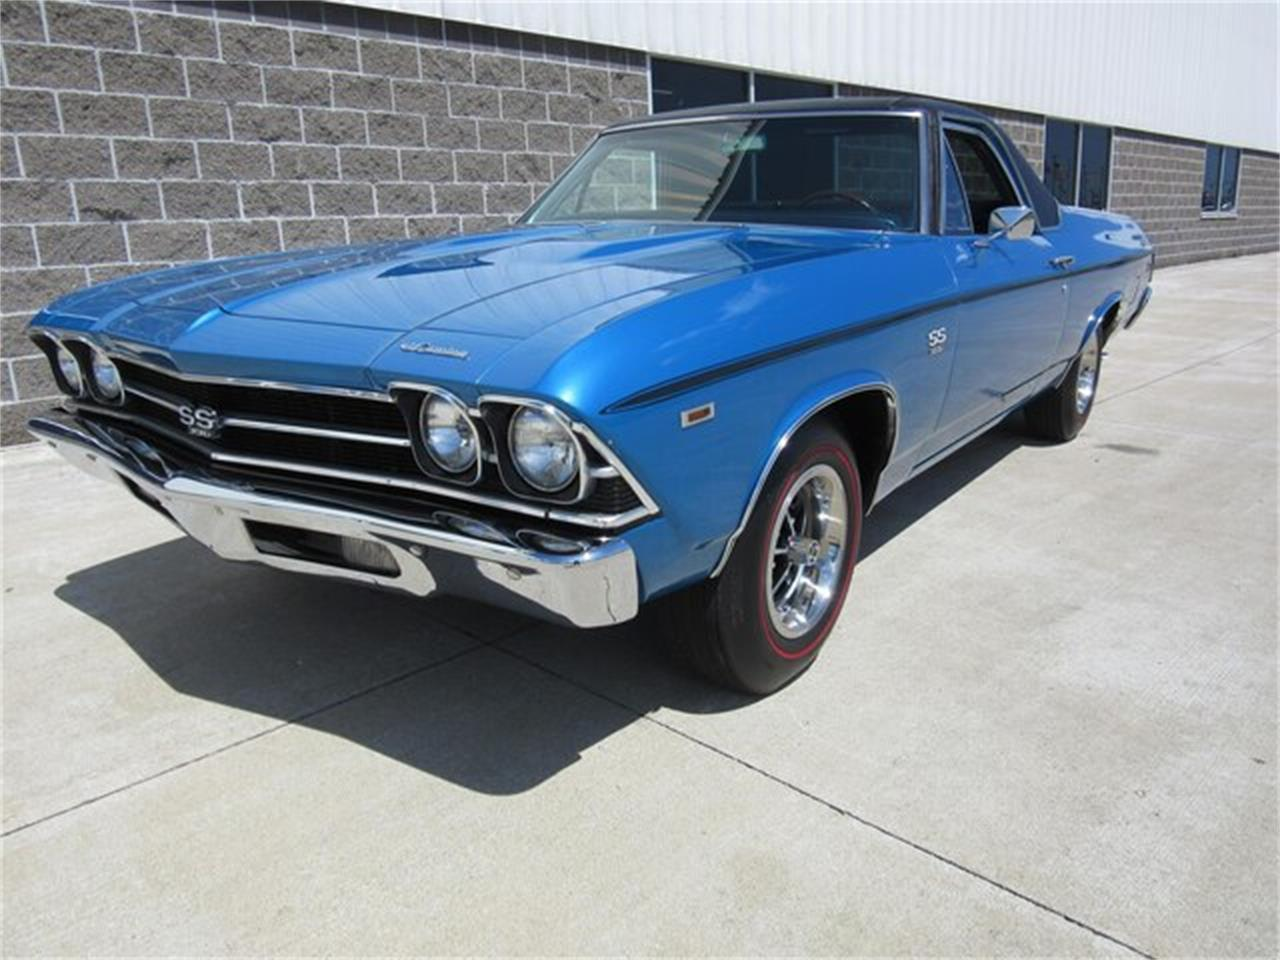 Large Picture of Classic 1969 Chevrolet El Camino located in Indiana - $38,500.00 Offered by Ray Skillman Classic Cars - QTRB